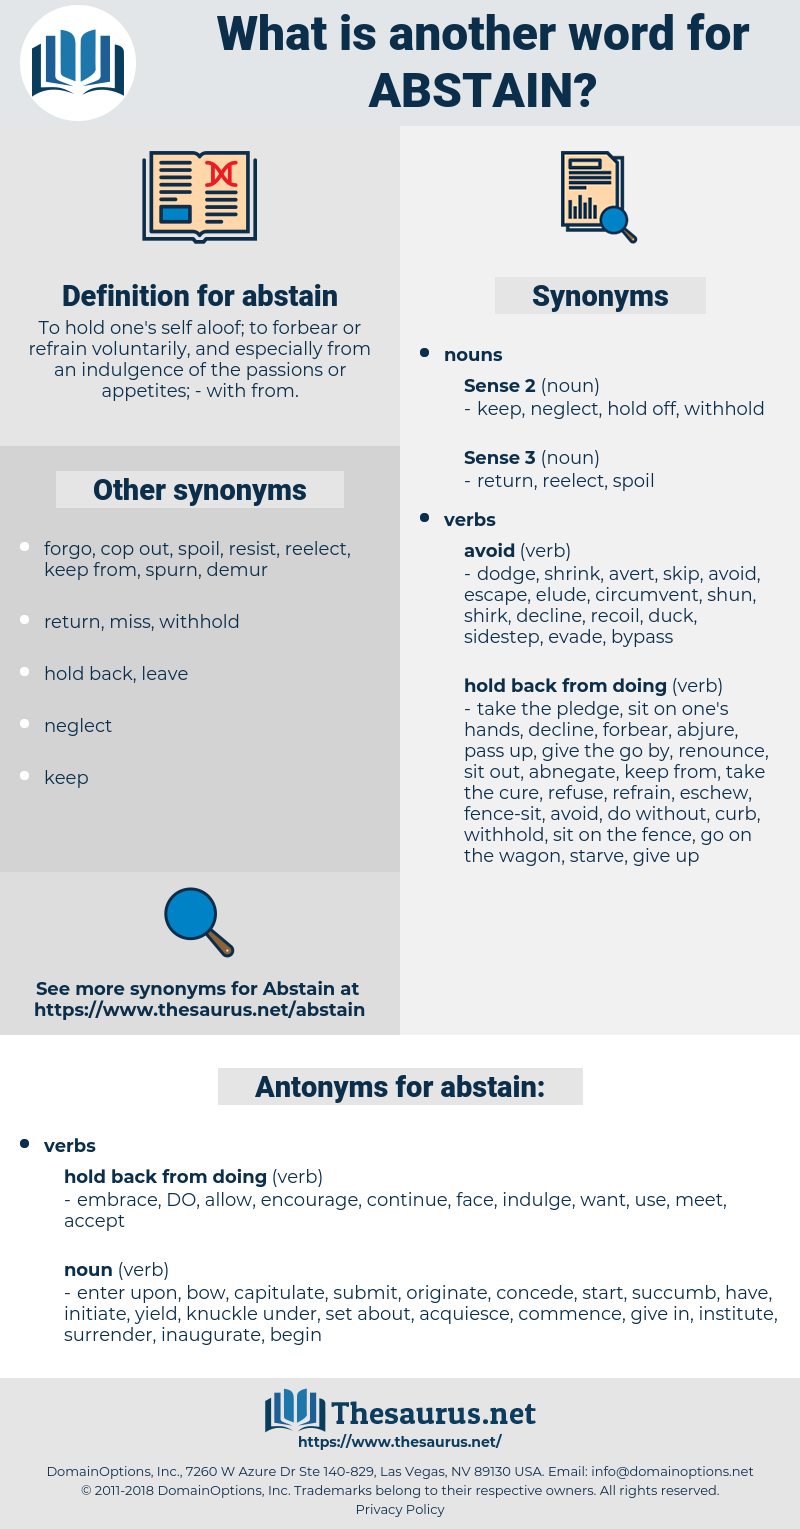 abstain, synonym abstain, another word for abstain, words like abstain, thesaurus abstain